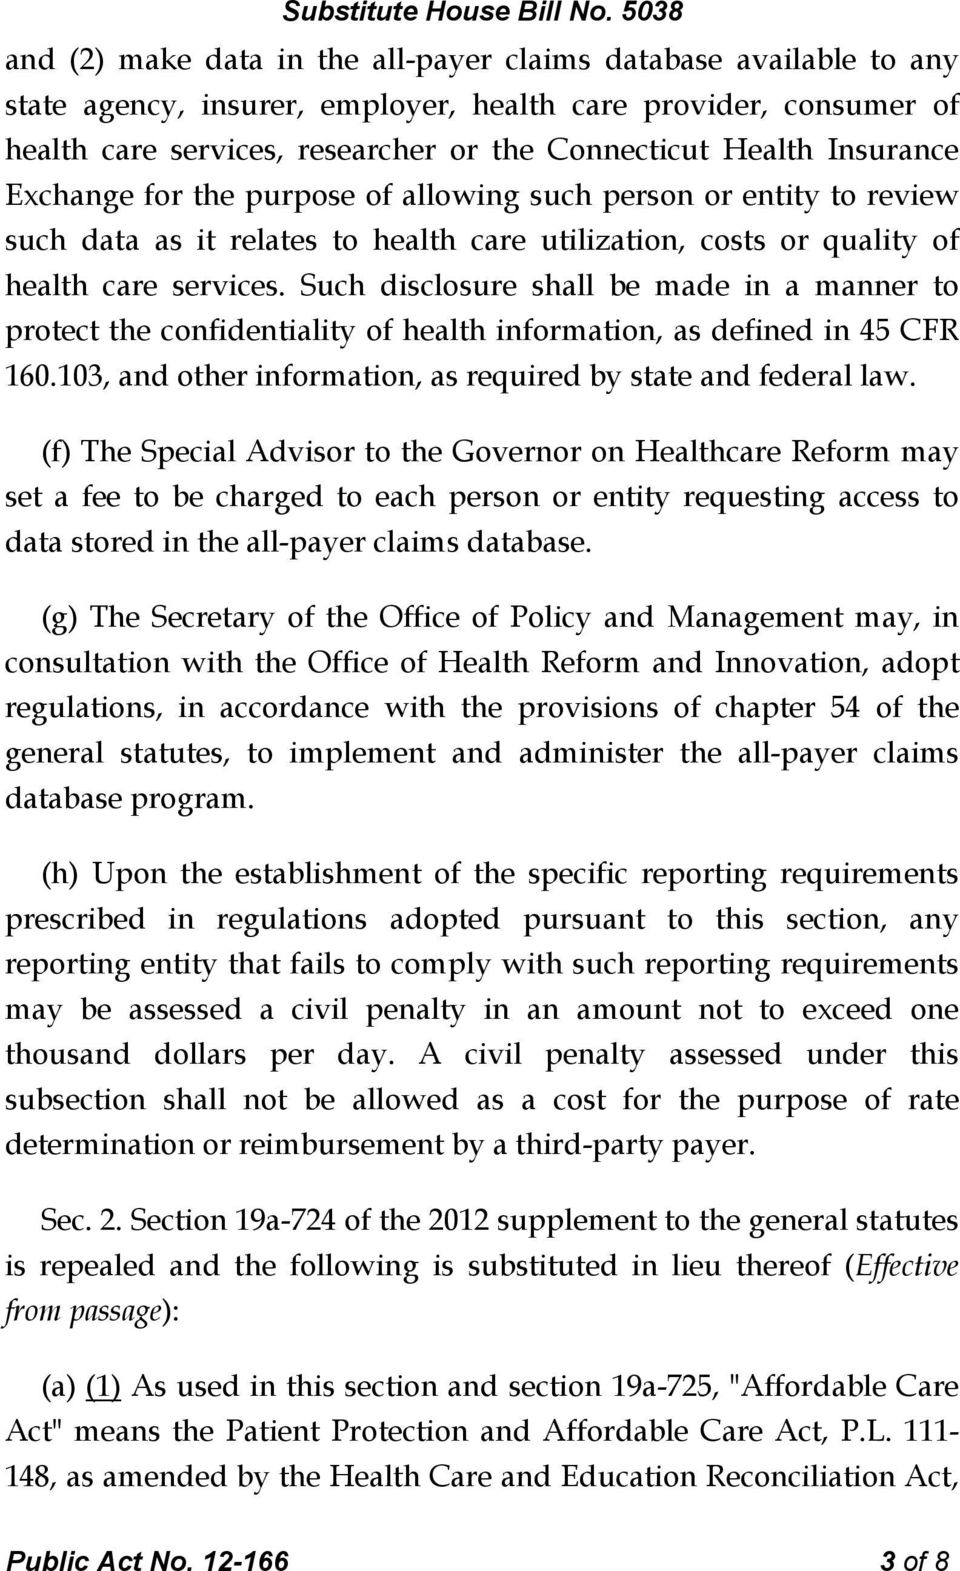 Such disclosure shall be made in a manner to protect the confidentiality of health information, as defined in 45 CFR 160.103, and other information, as required by state and federal law.